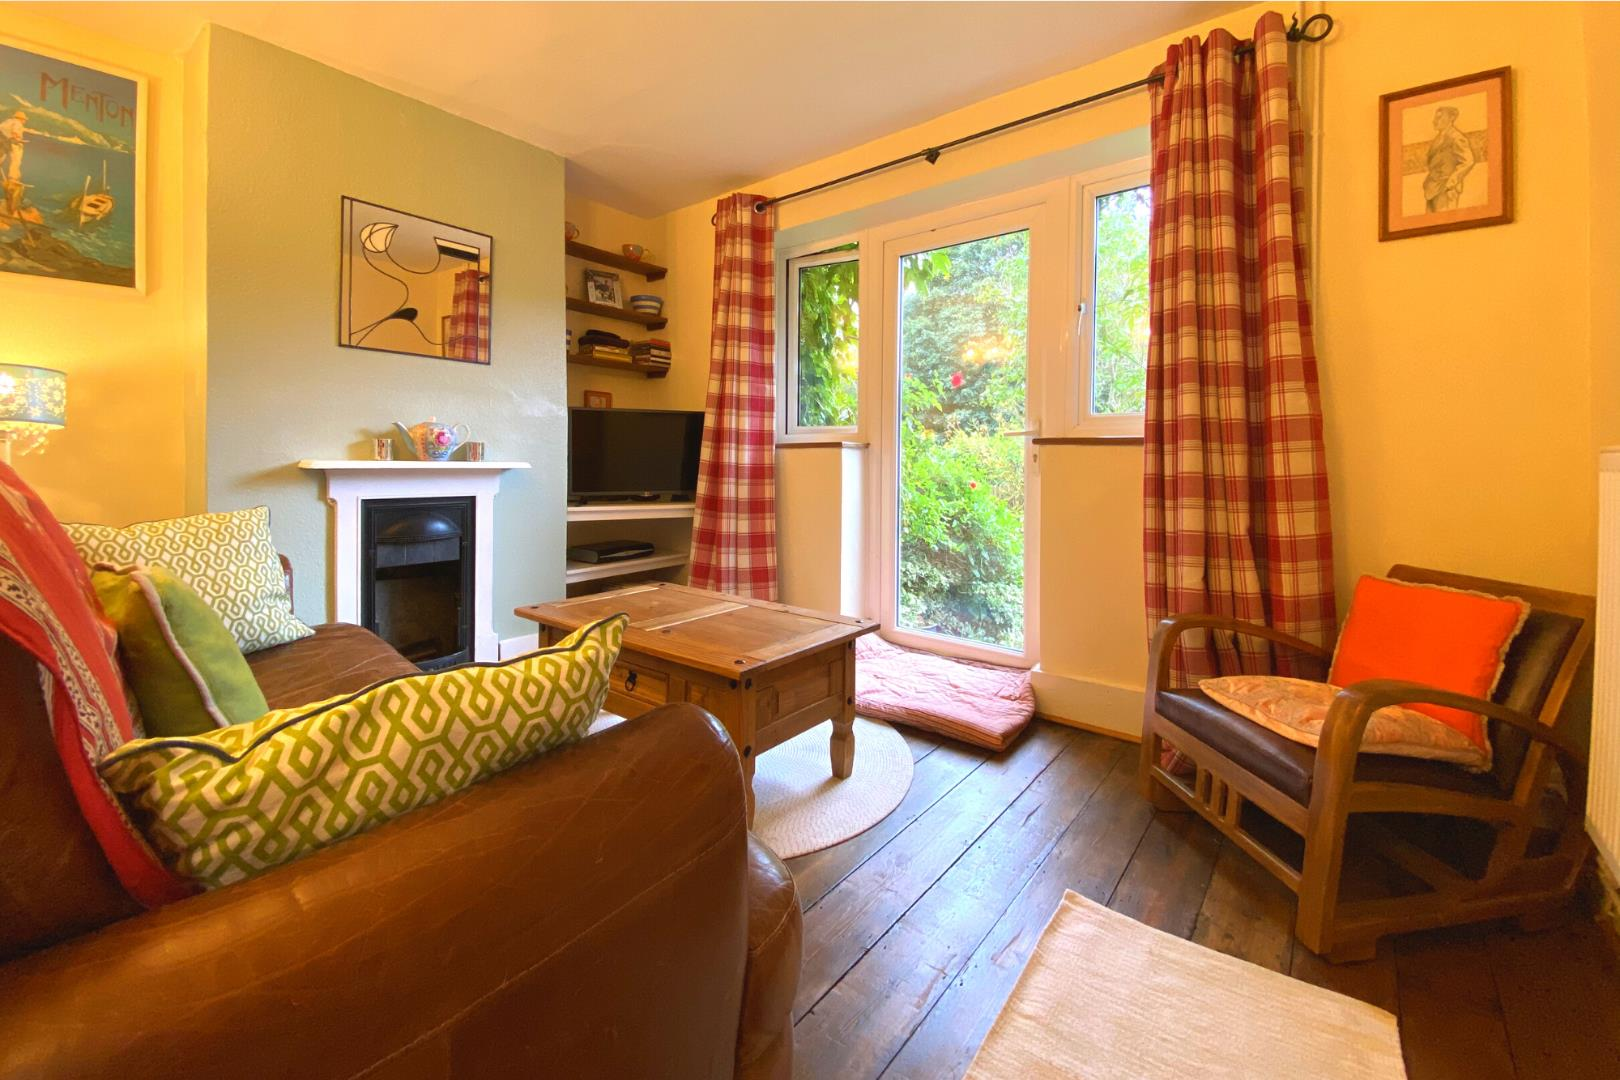 2 bed house for sale in Wonersh  - Property Image 2